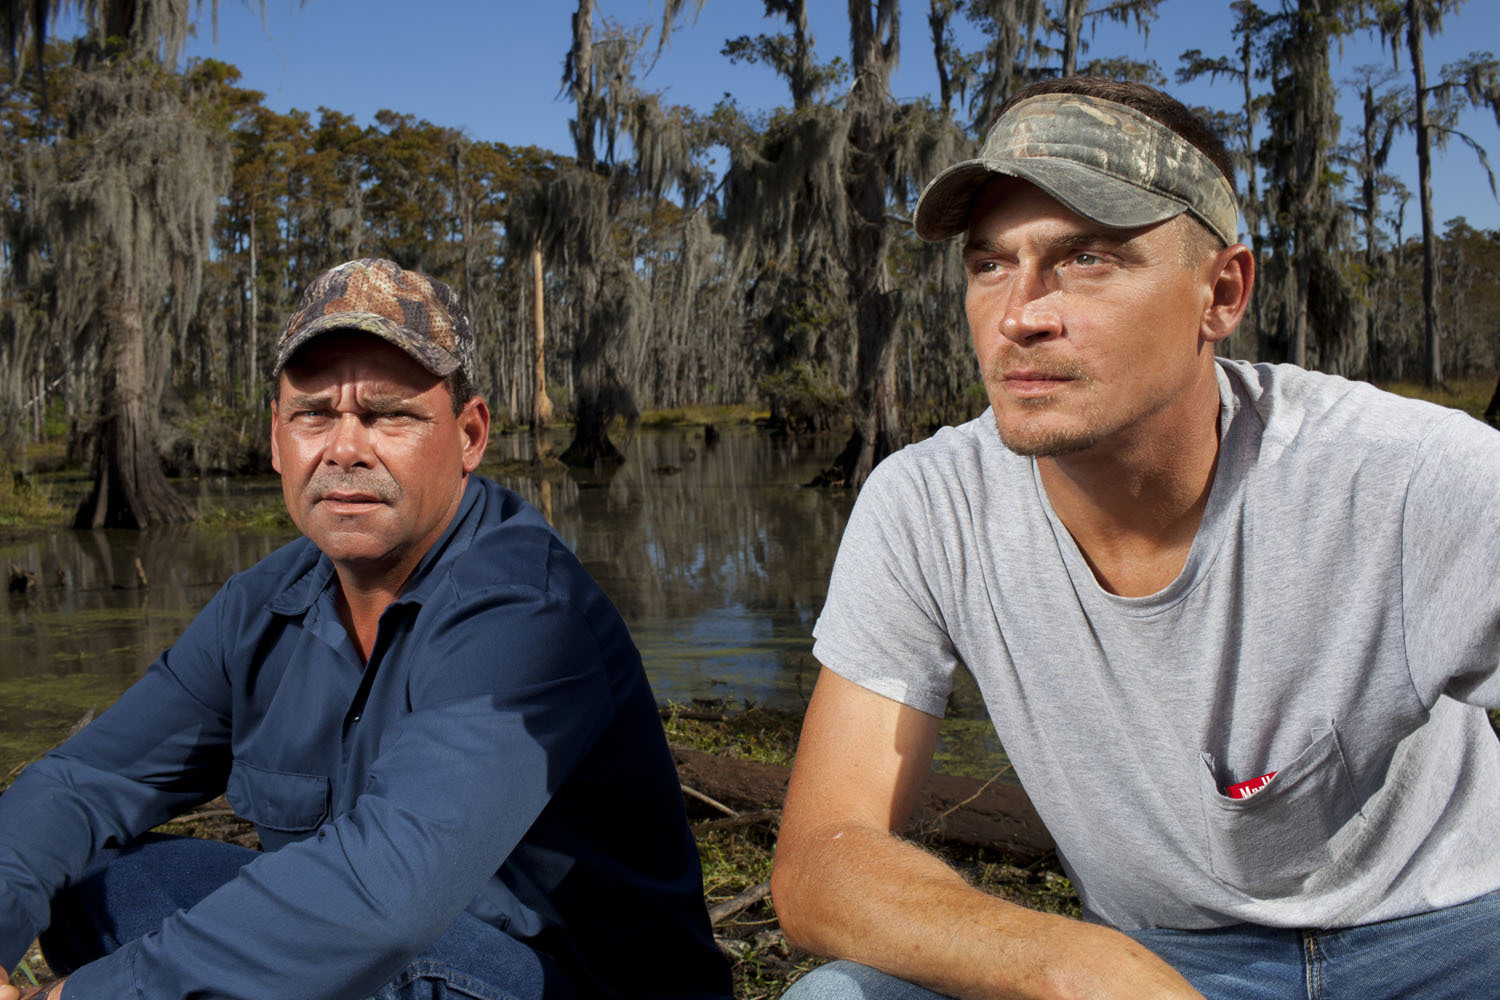 444 Swamp People. Season 8 3